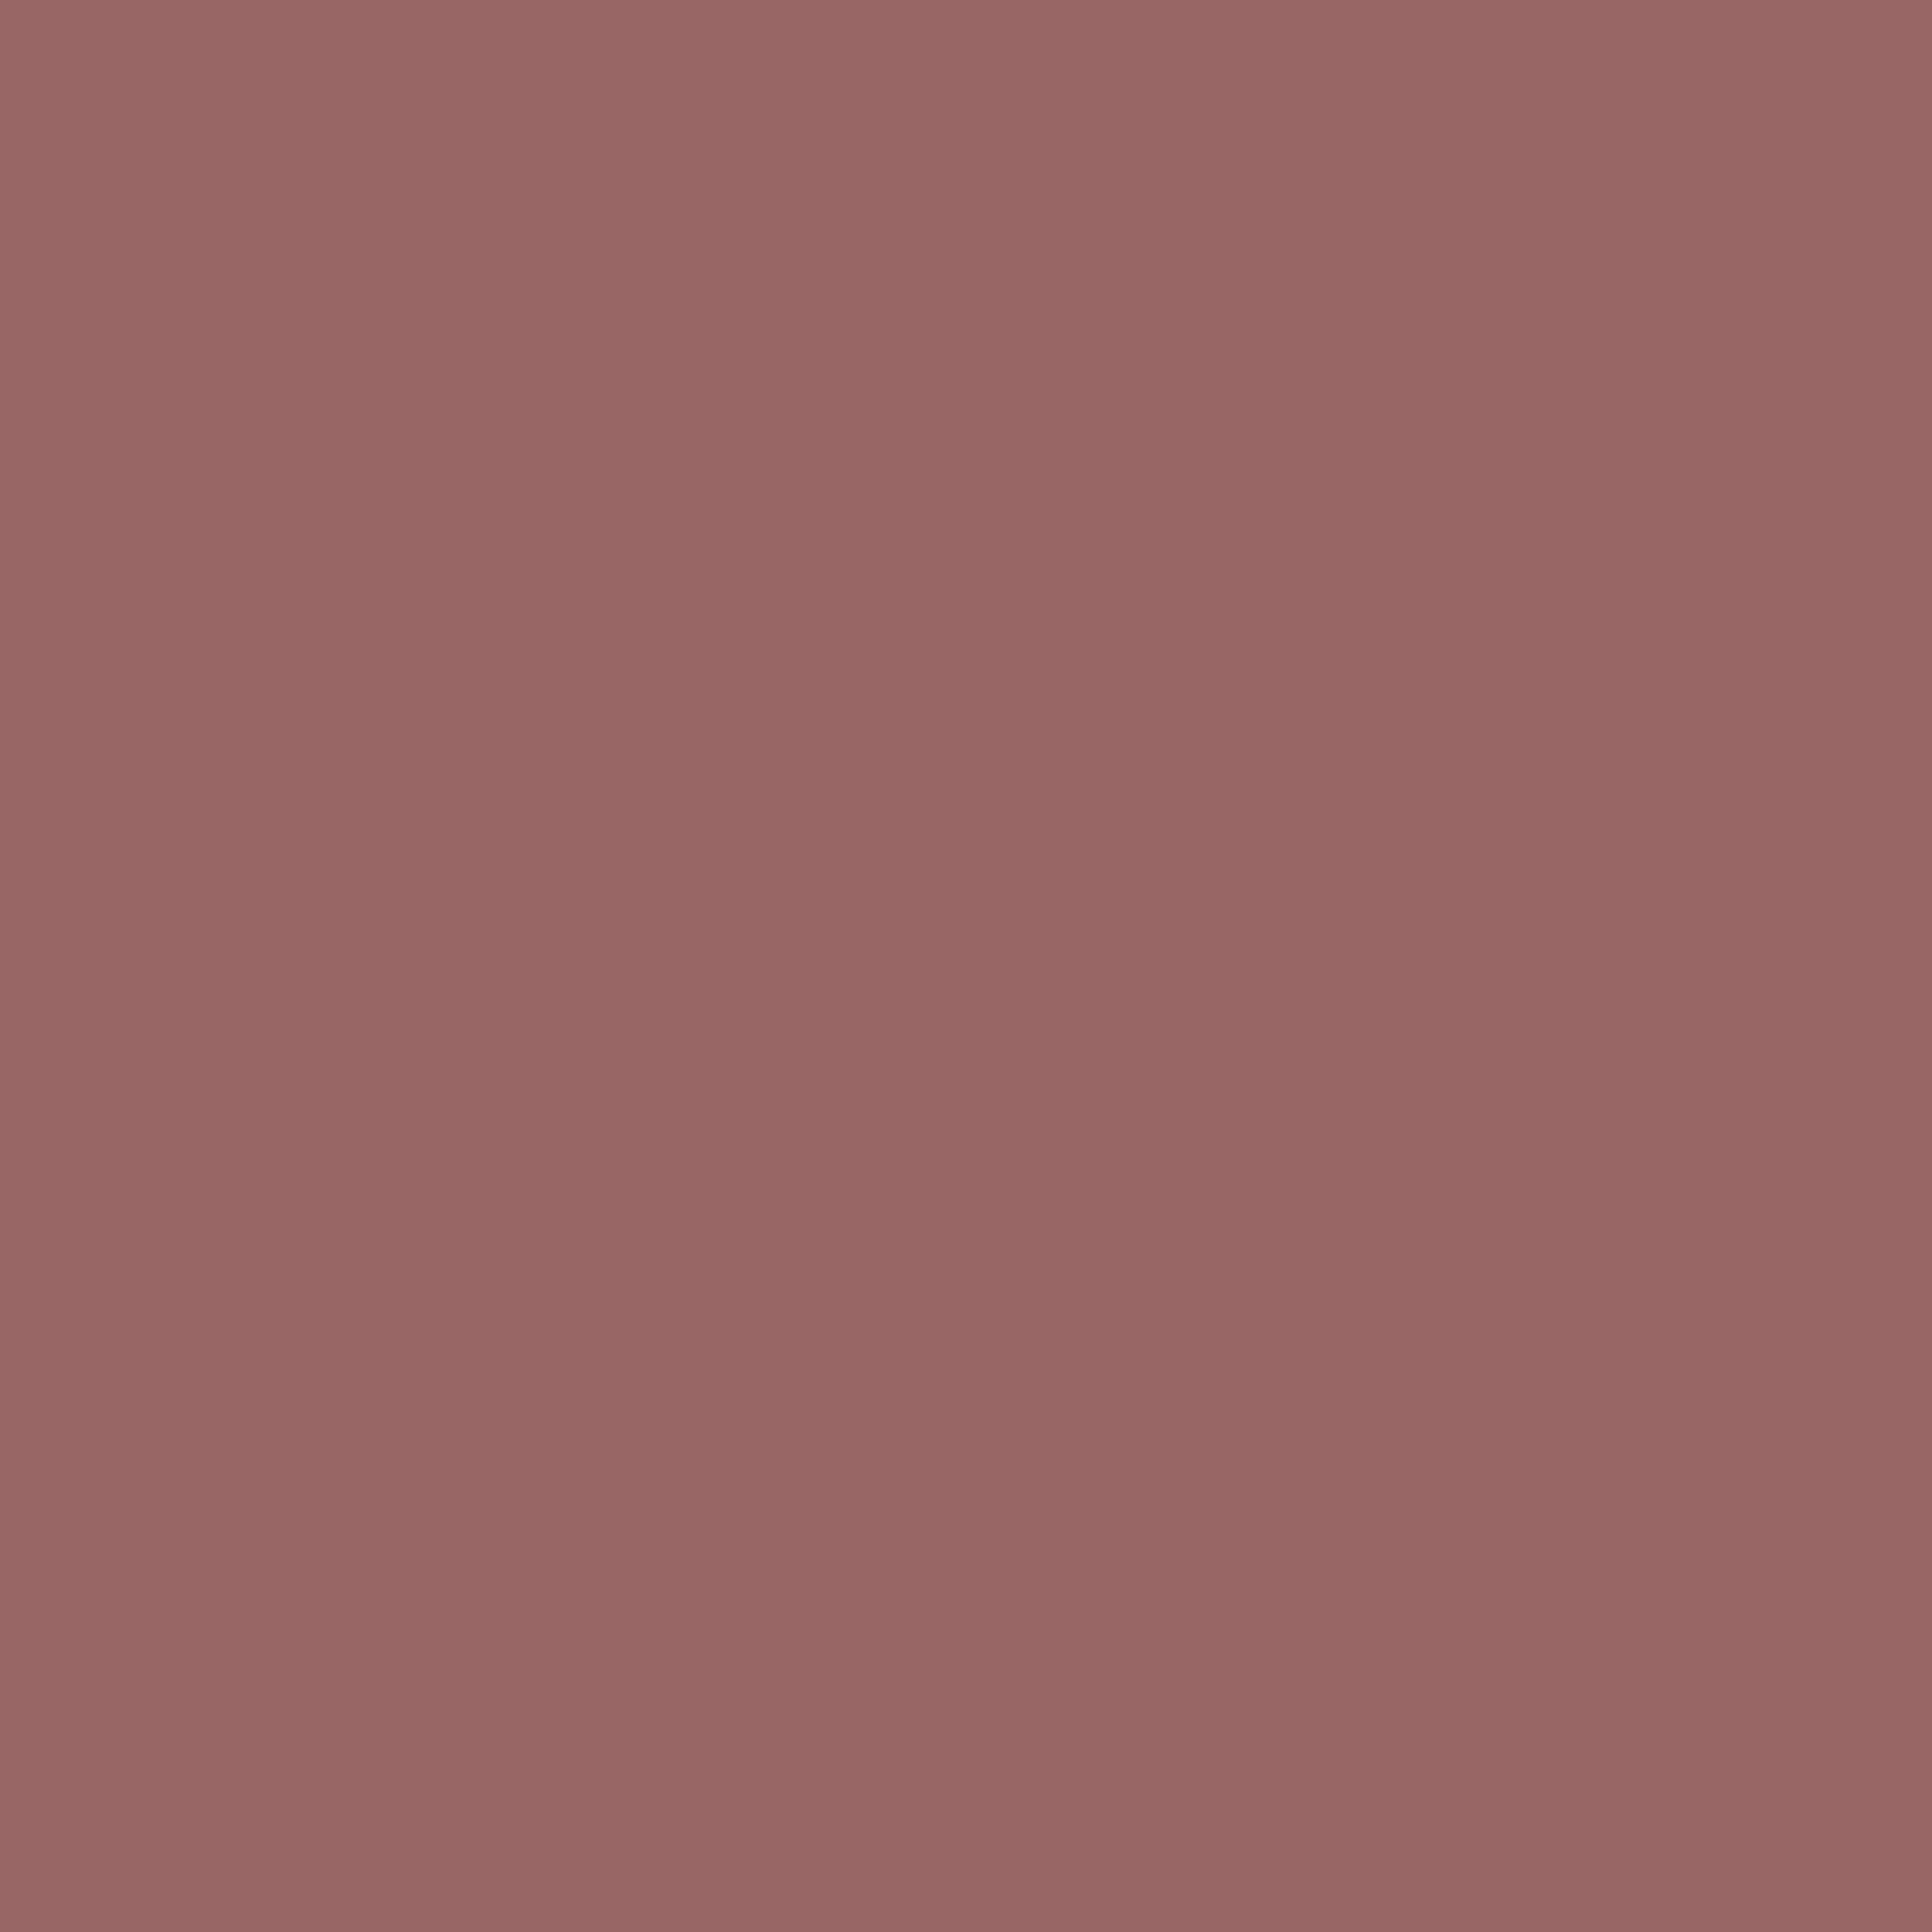 2732x2732 Copper Rose Solid Color Background